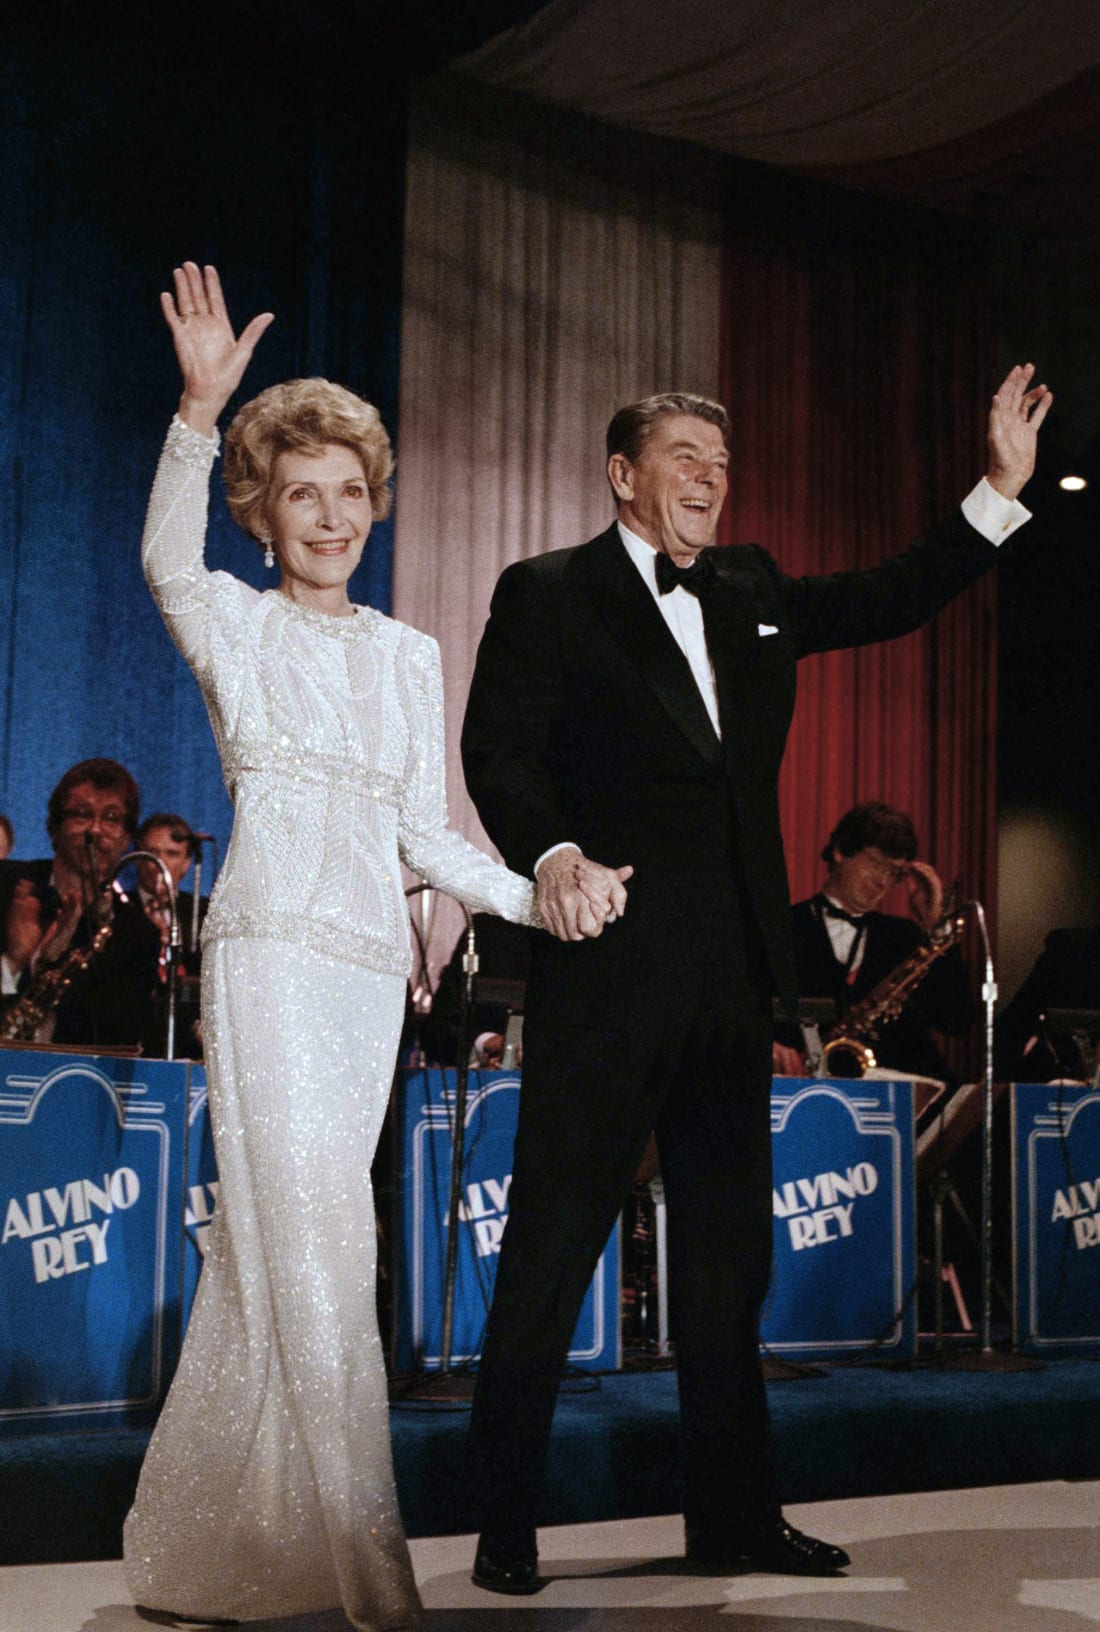 Nancy and Ronald Reagan arrive at the inaugural ball in the Washington Hilton on January 21, 1985.